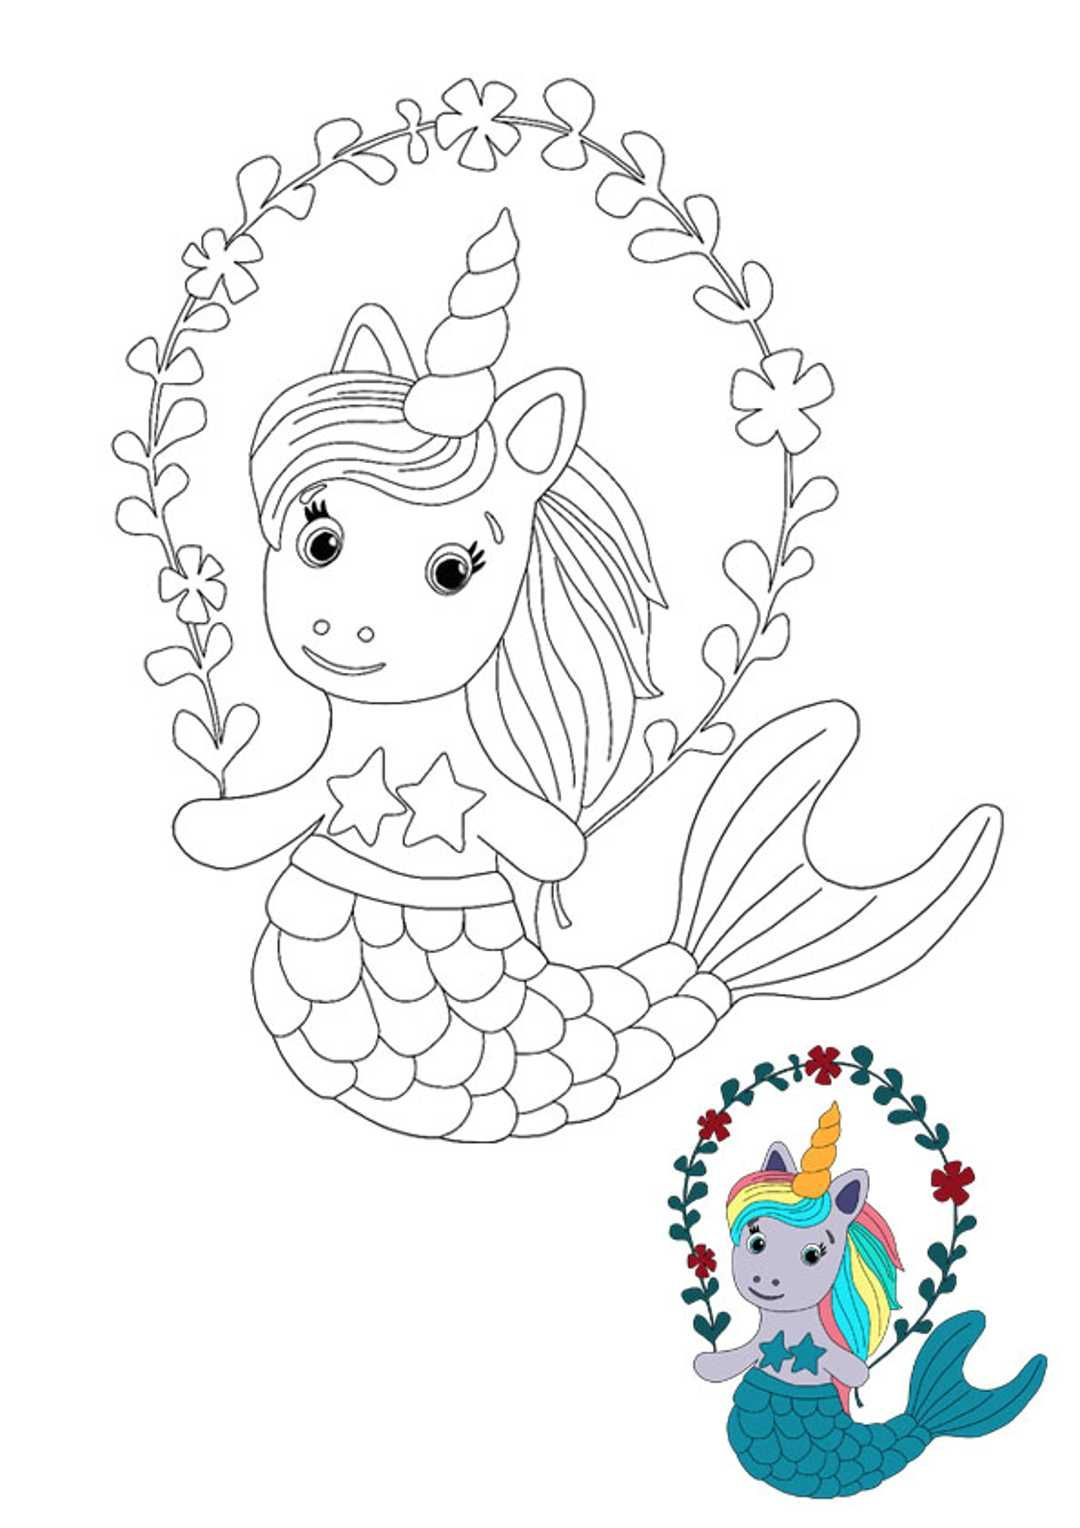 Unicorn Mermaid Coloring Pages  Unicorn coloring pages, Elephant